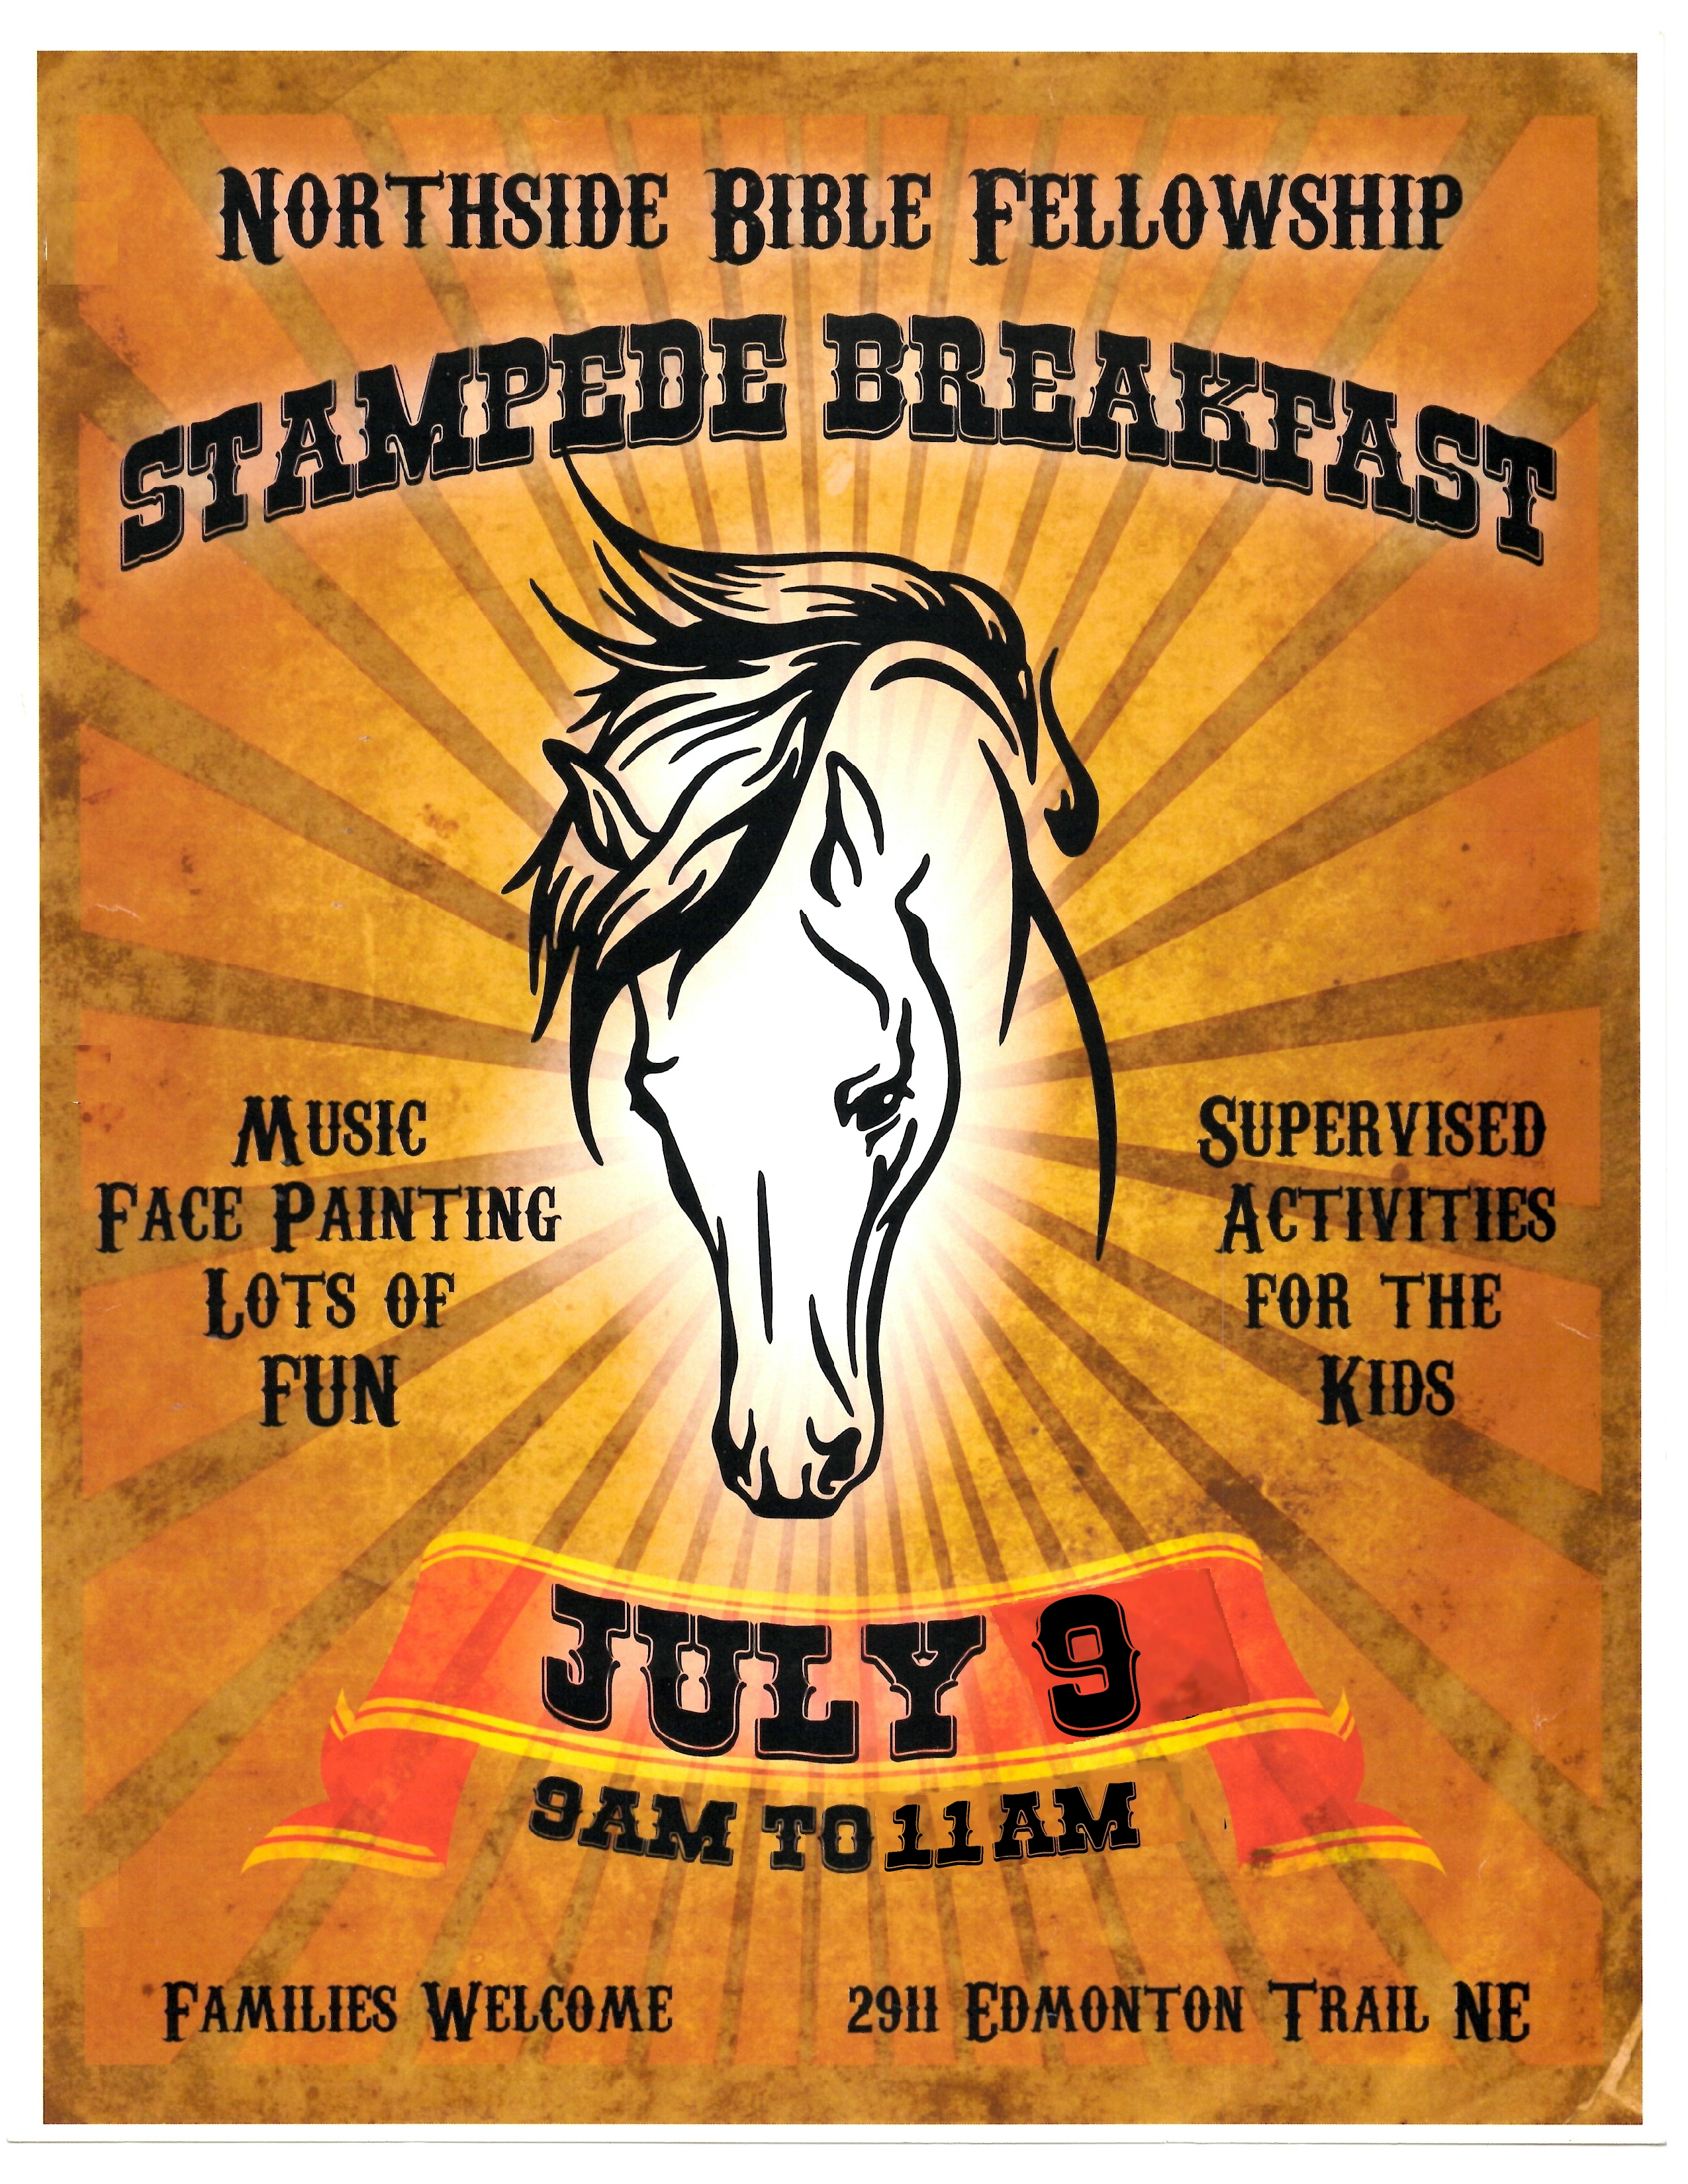 Northside Bible Fellowship Church Annual Stampede Breakfast 2017